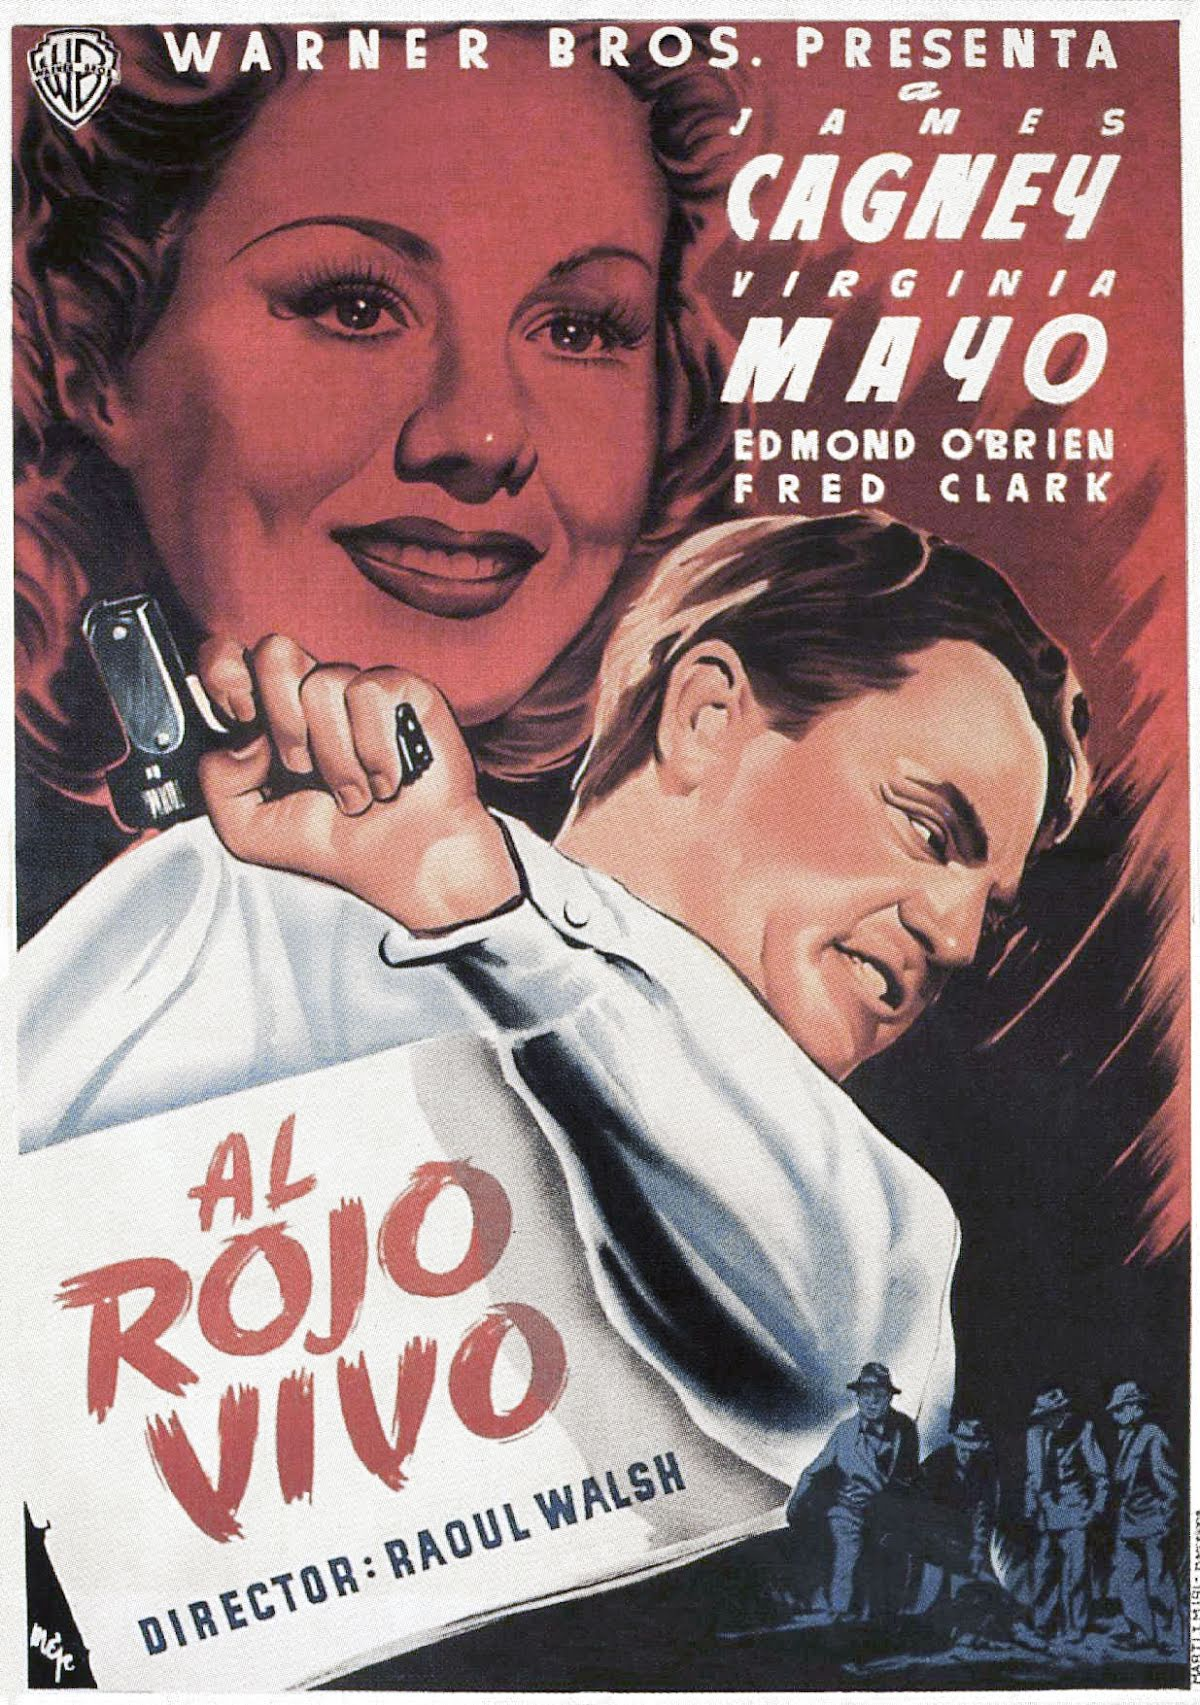 Al rojo vivo - White Heat (1949)